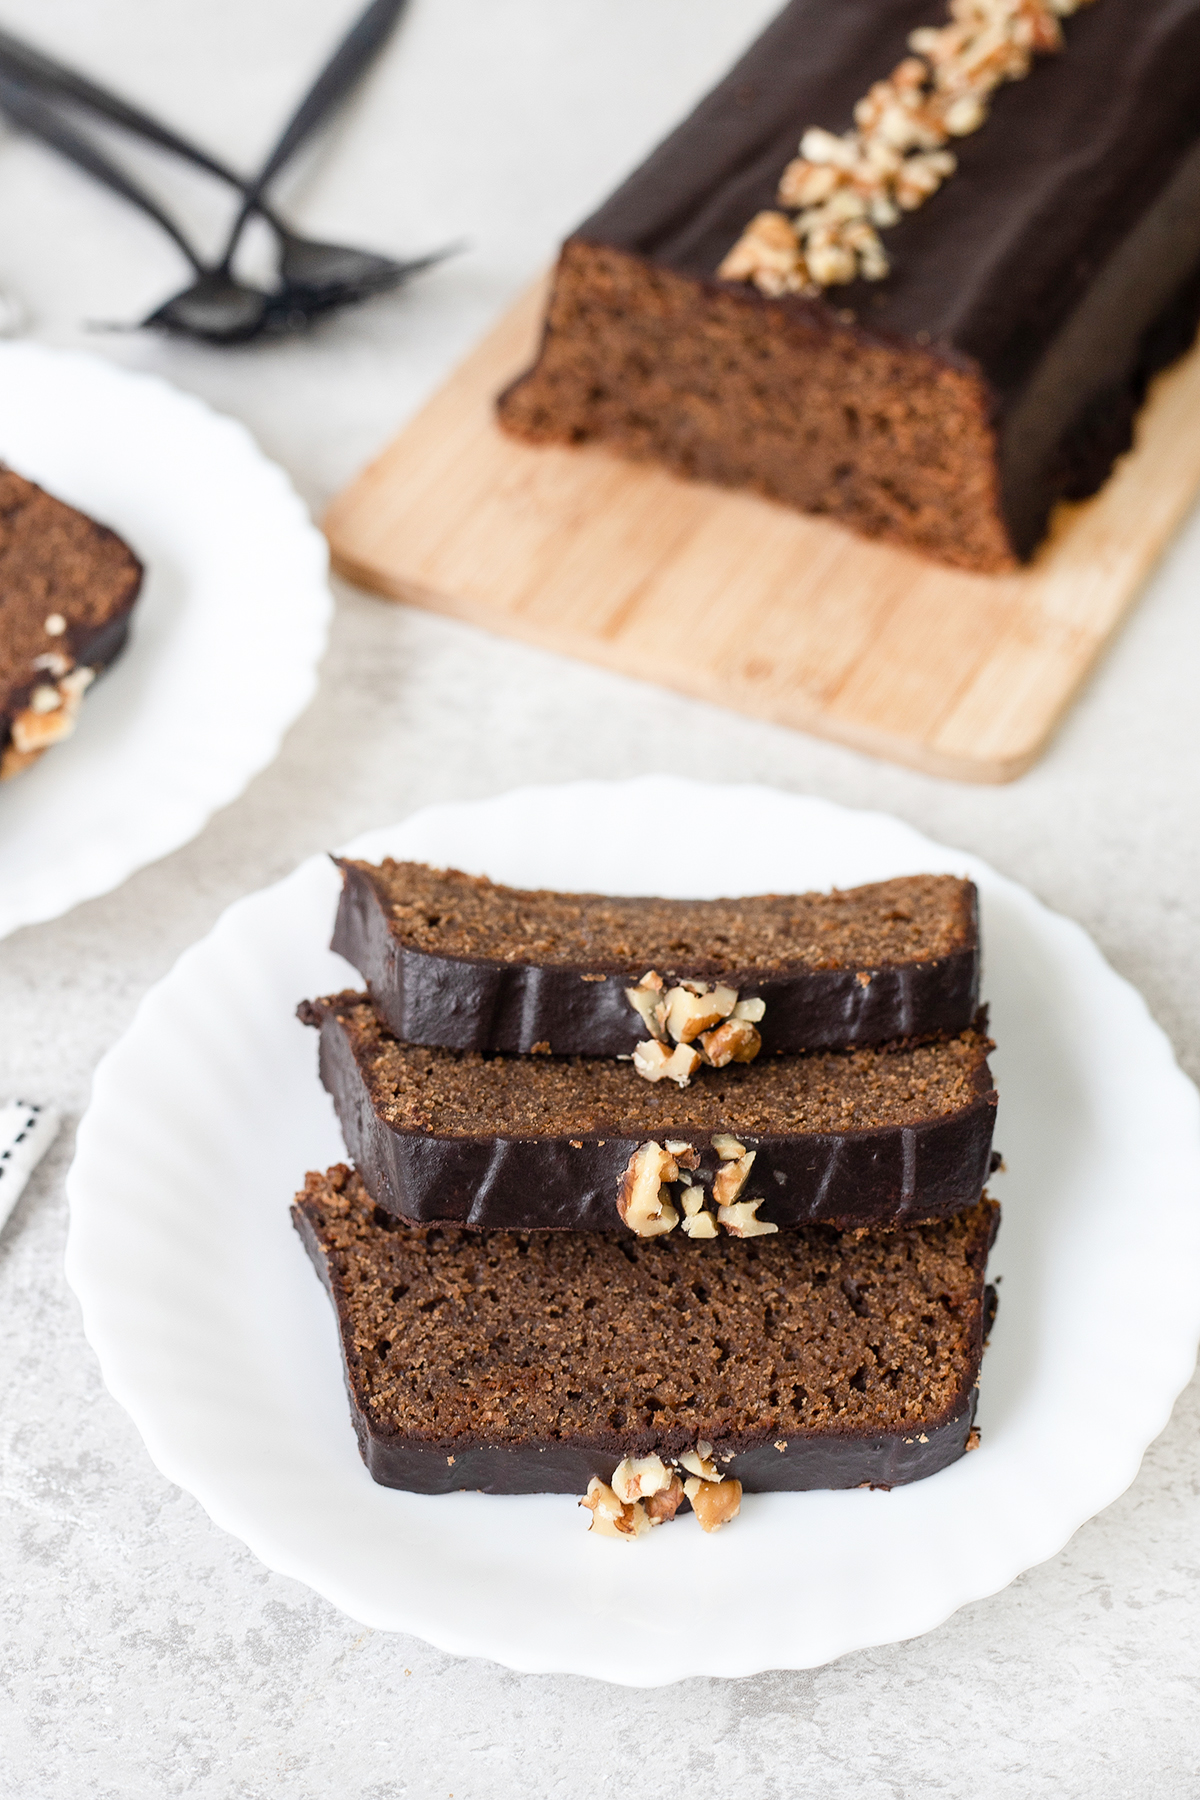 three slices of the Coffee Loaf Cake